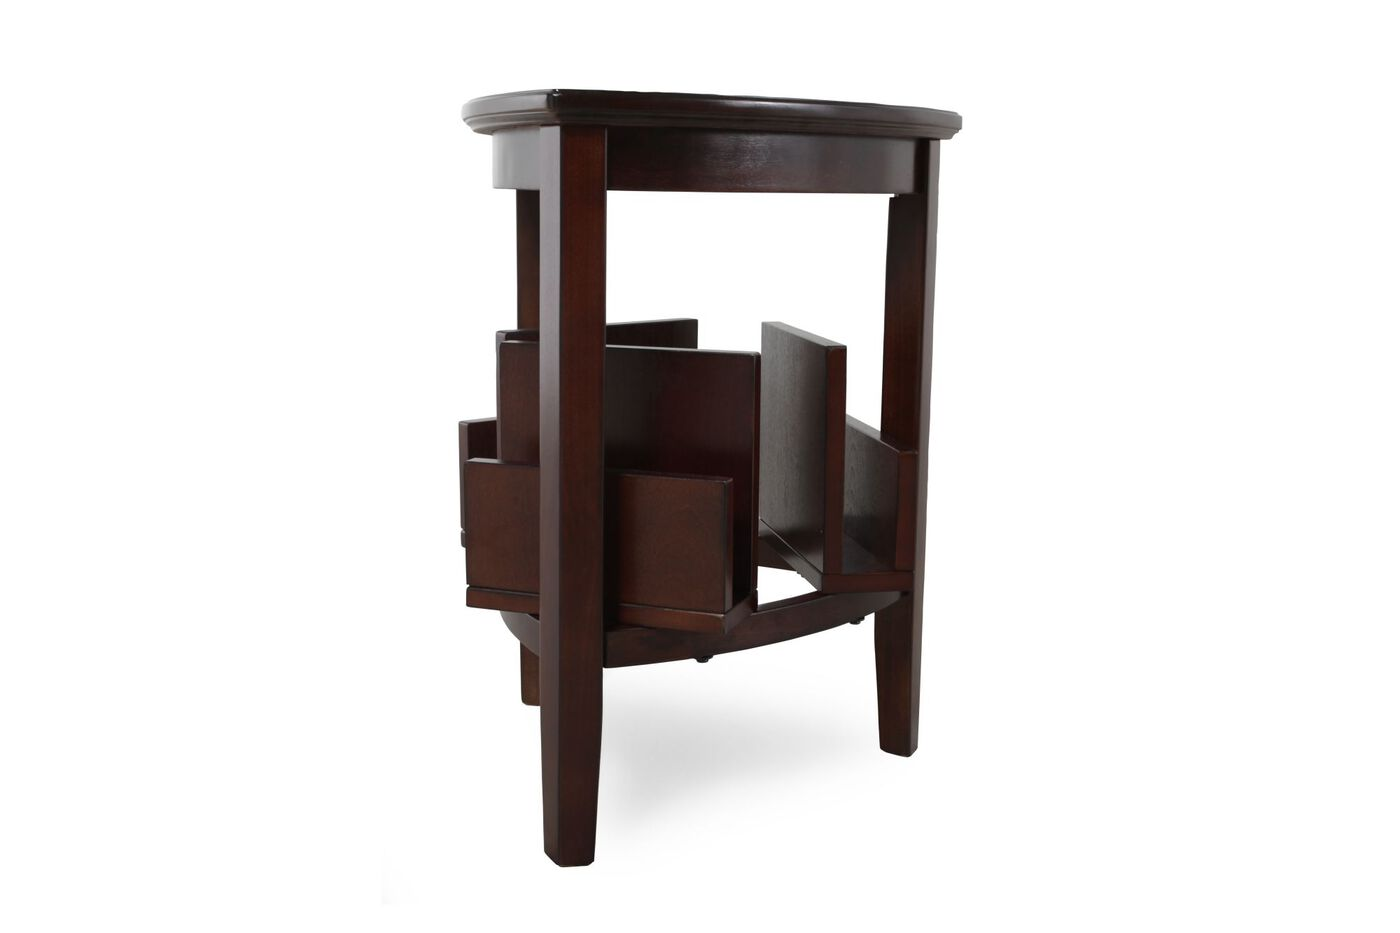 Ashley Larimer End Table Mathis Brothers Furniture : ASH T6540476 1 from www.mathisbrothers.com size 1400 x 933 jpeg 34kB